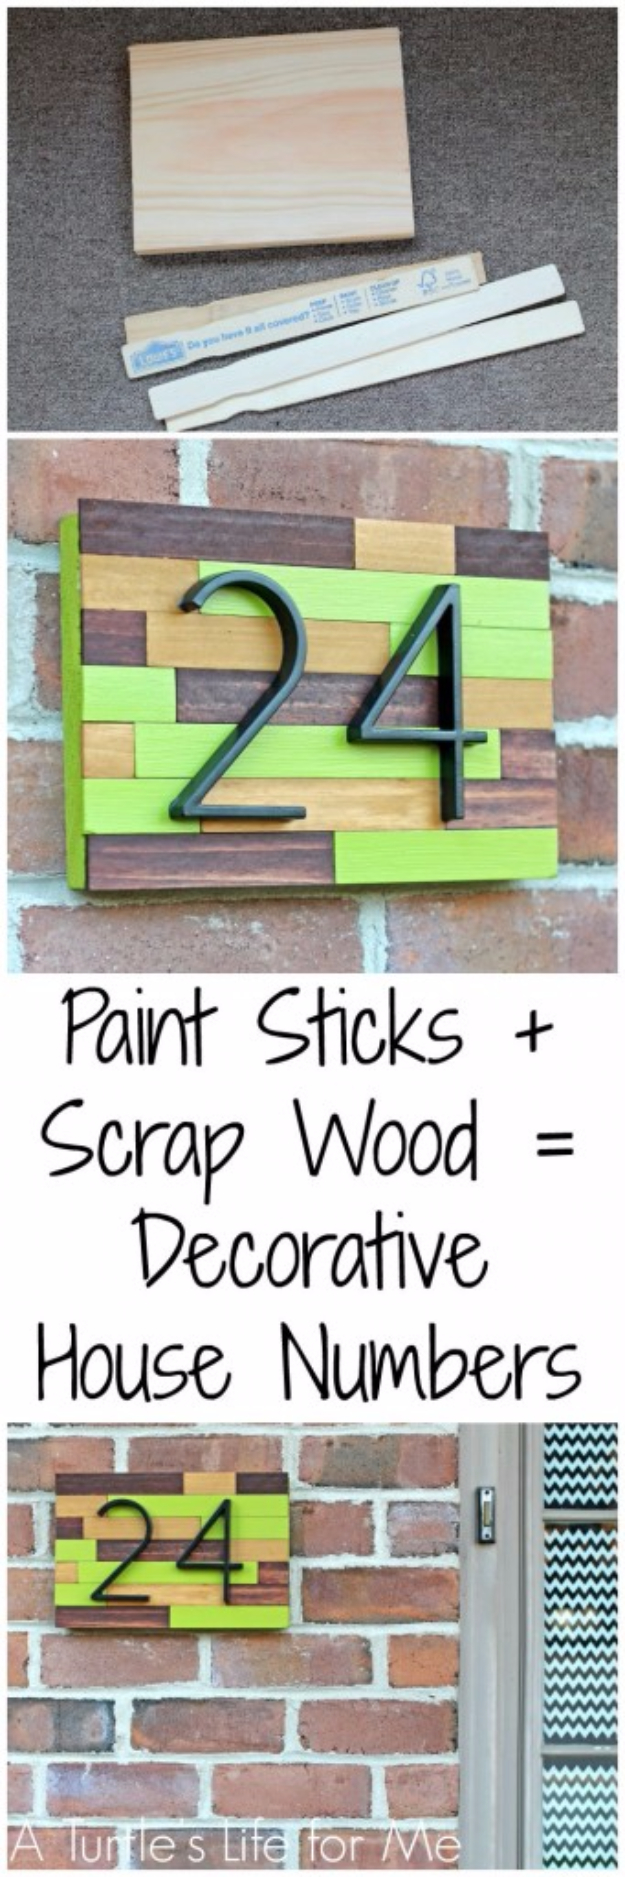 Creative Ways to Increase Curb Appeal on A Budget - House Number Plaque DIY - Cheap and Easy Ideas for Upgrading Your Front Porch, Landscaping, Driveways, Garage Doors, Brick and Home Exteriors. Add Window Boxes, House Numbers